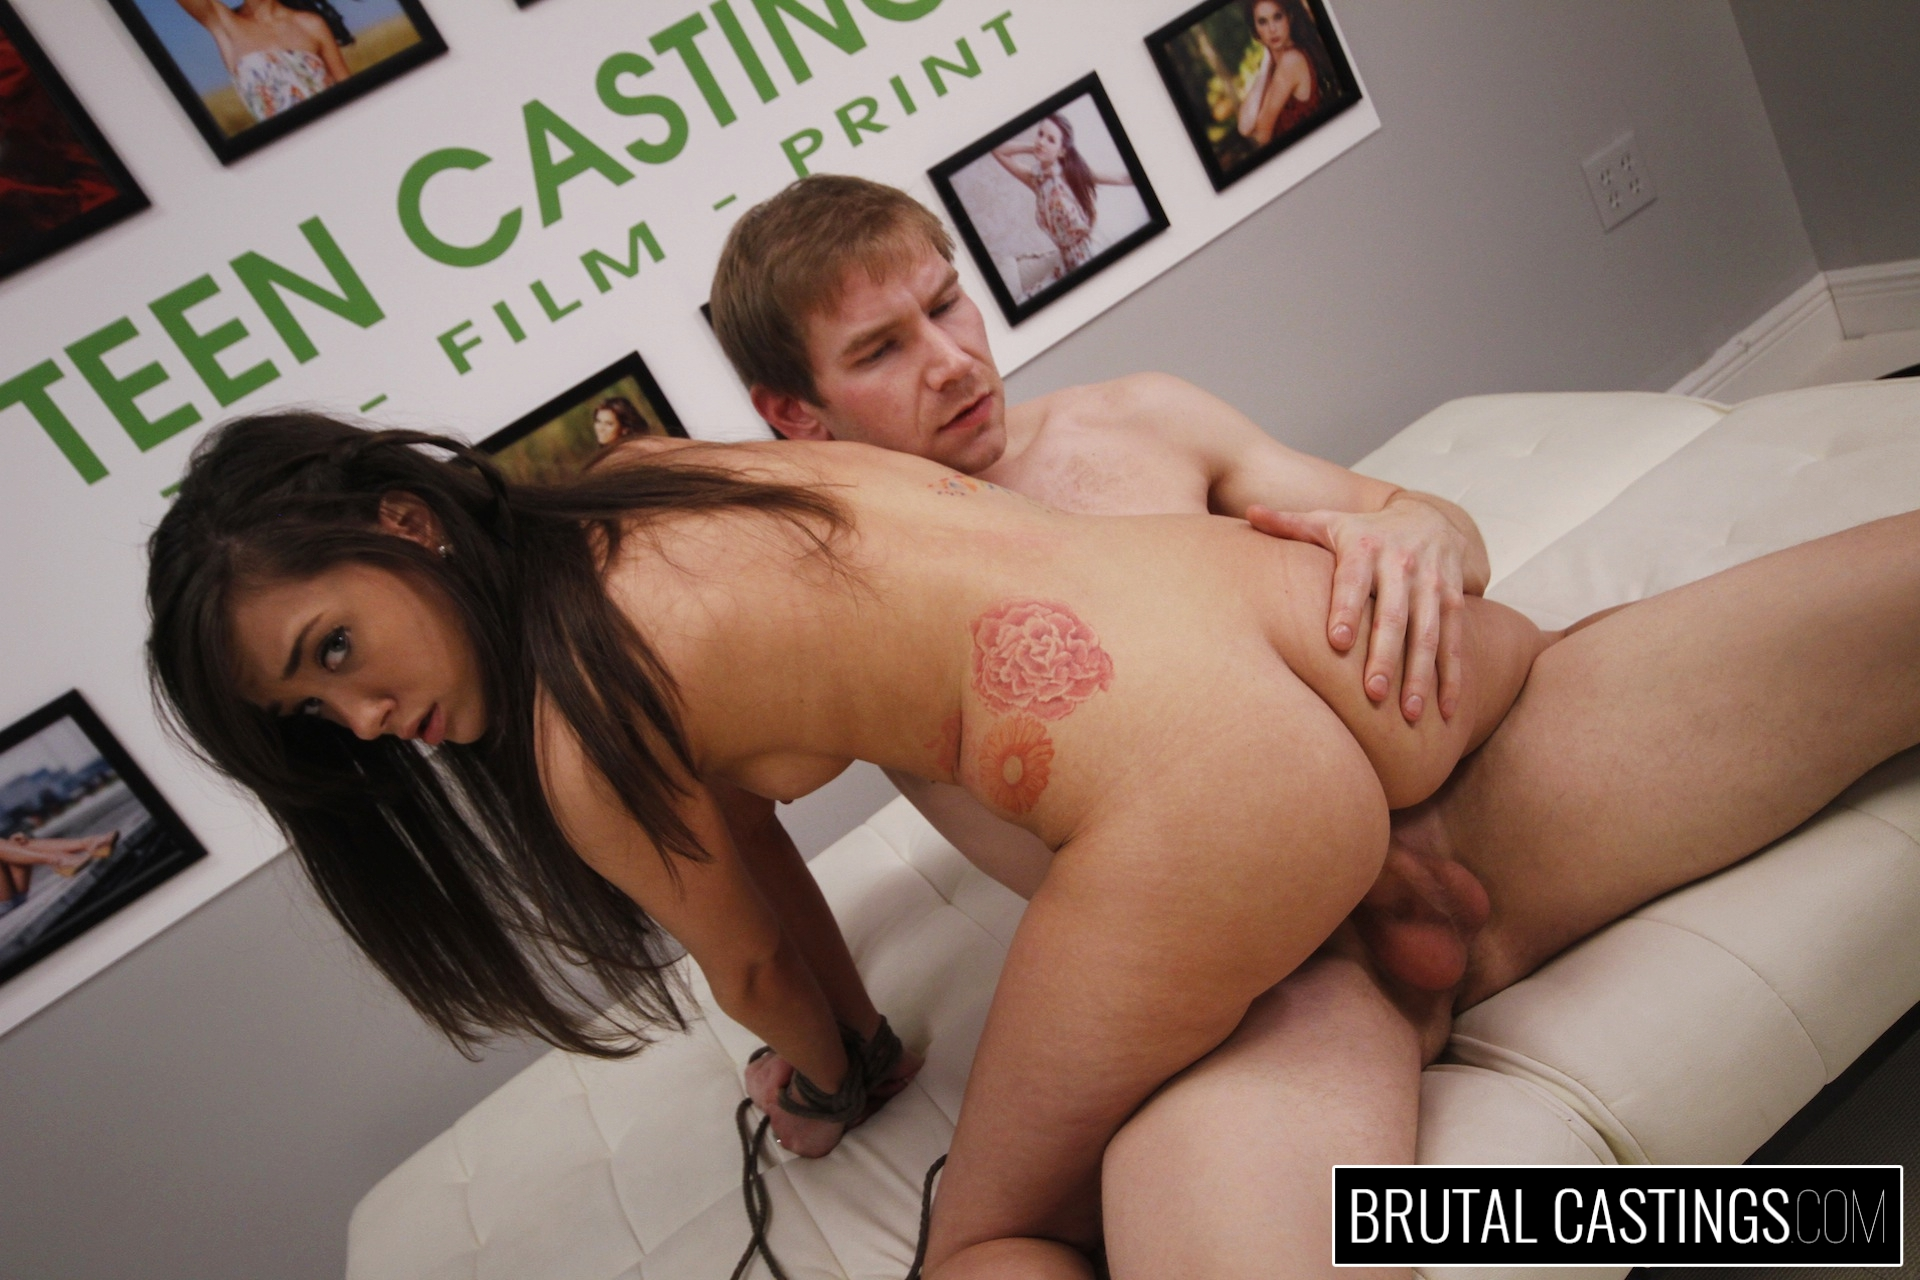 Bdsm casting couch xxx with gia paige. Gia Paige, a hardworking young hottie, desperately wants to quit her job for high fashion modeling with Teen Castings! She'll do anything to get what she wants. She'll even endure BDSM, domination, rope bondage, deepthroat bj, fingering, squirting, spanking, slapping and deep penetration violent sex.